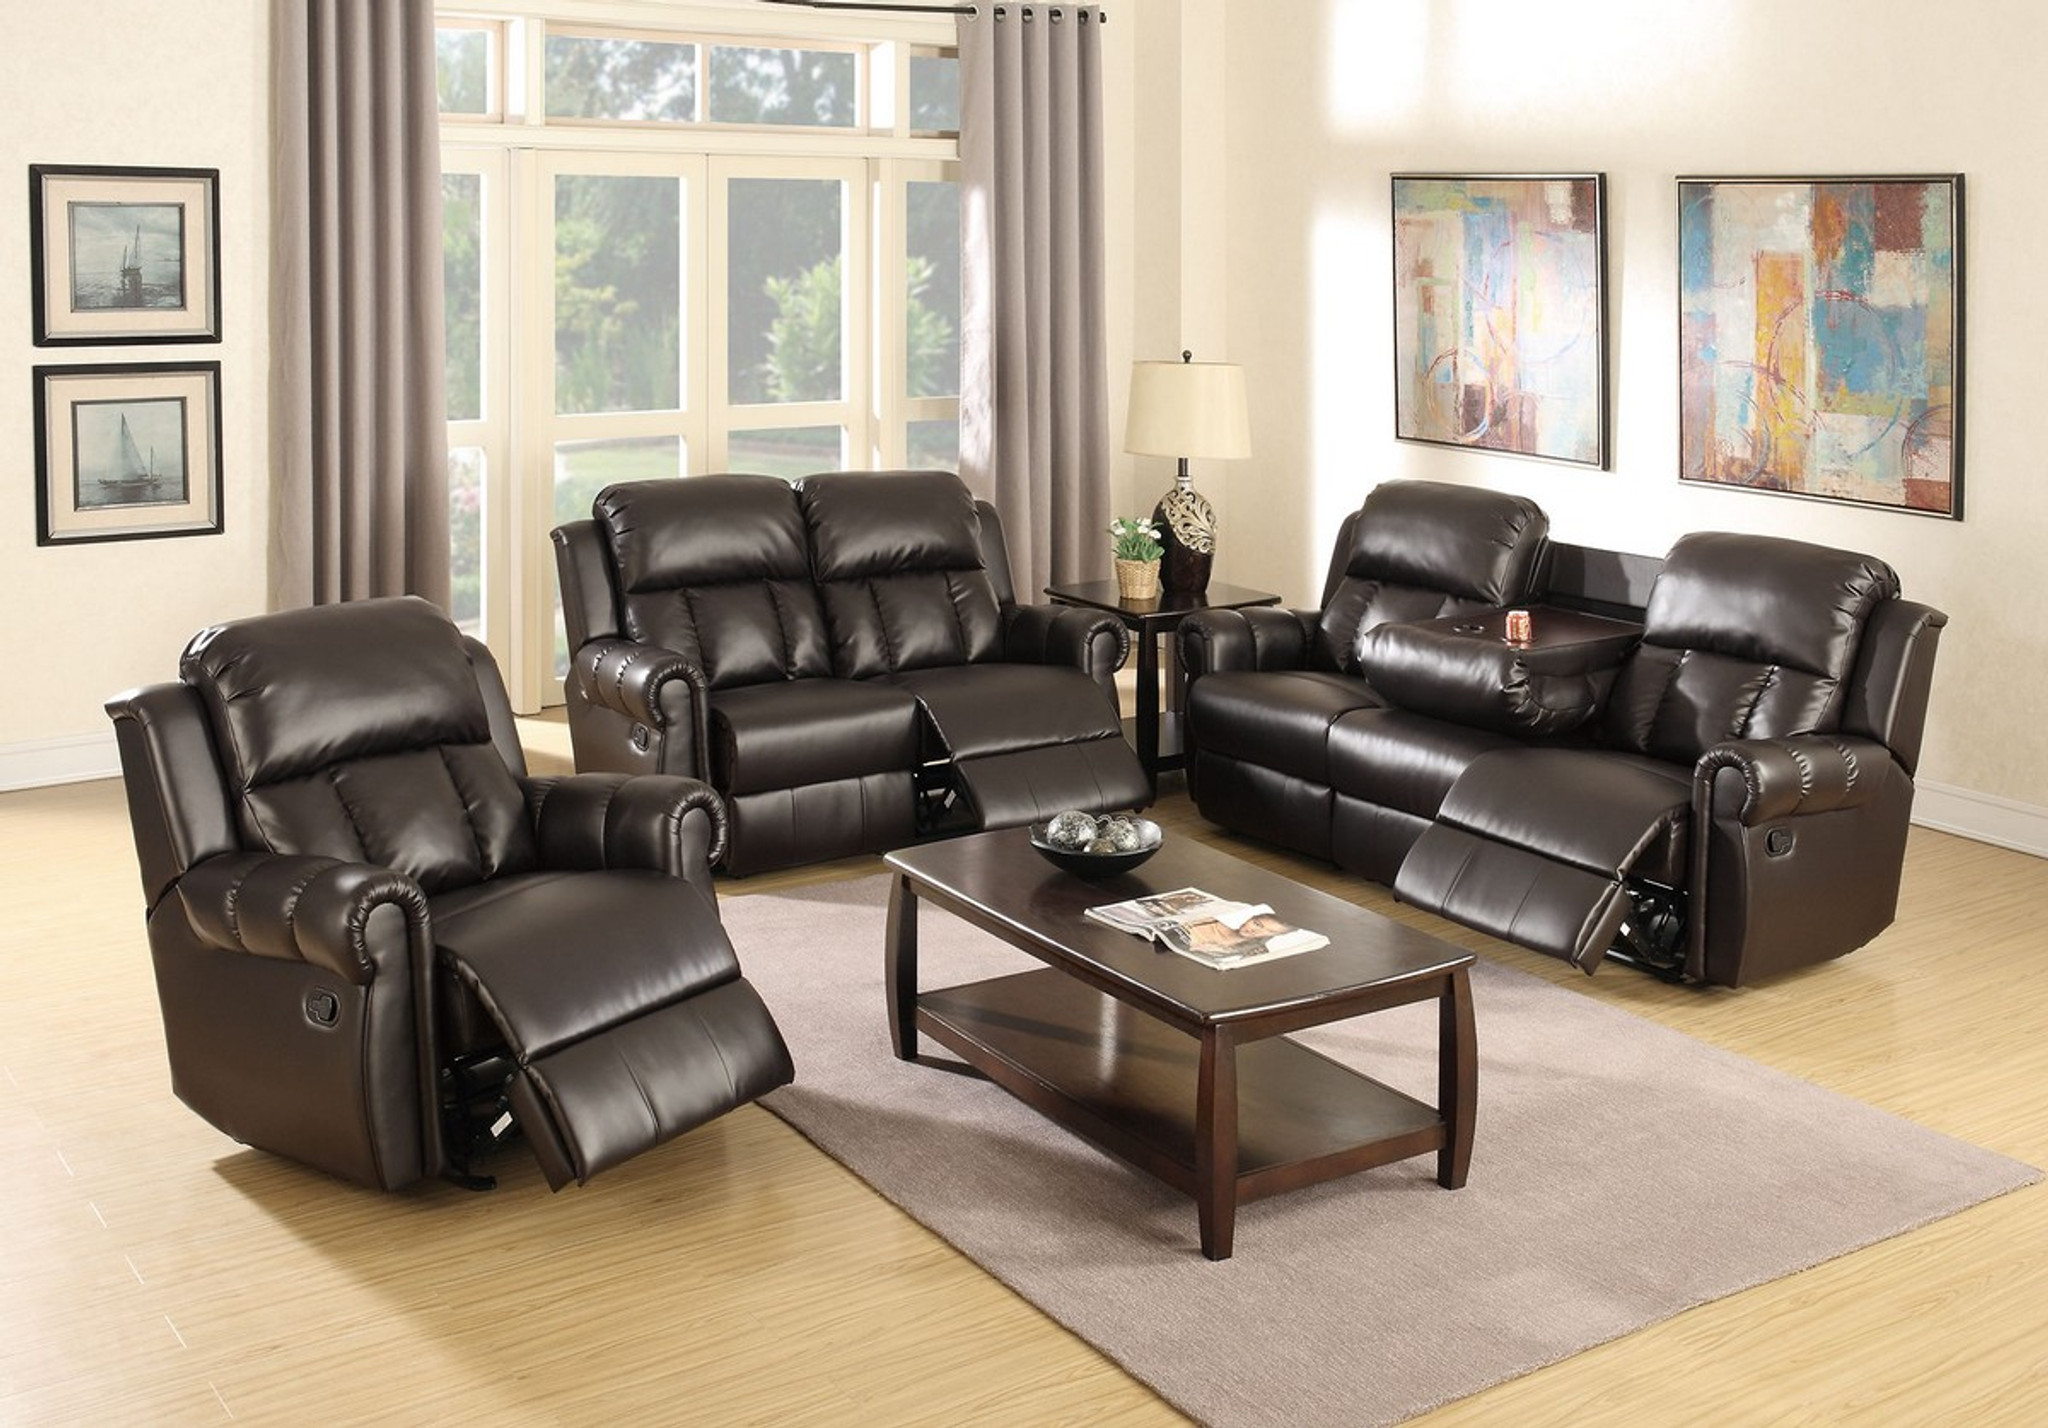 Picture of: Kassa Mall Home Furniture 3pcs Set Recliner Loveseat Sofa Upholsetered In Espresso Bonded Leather